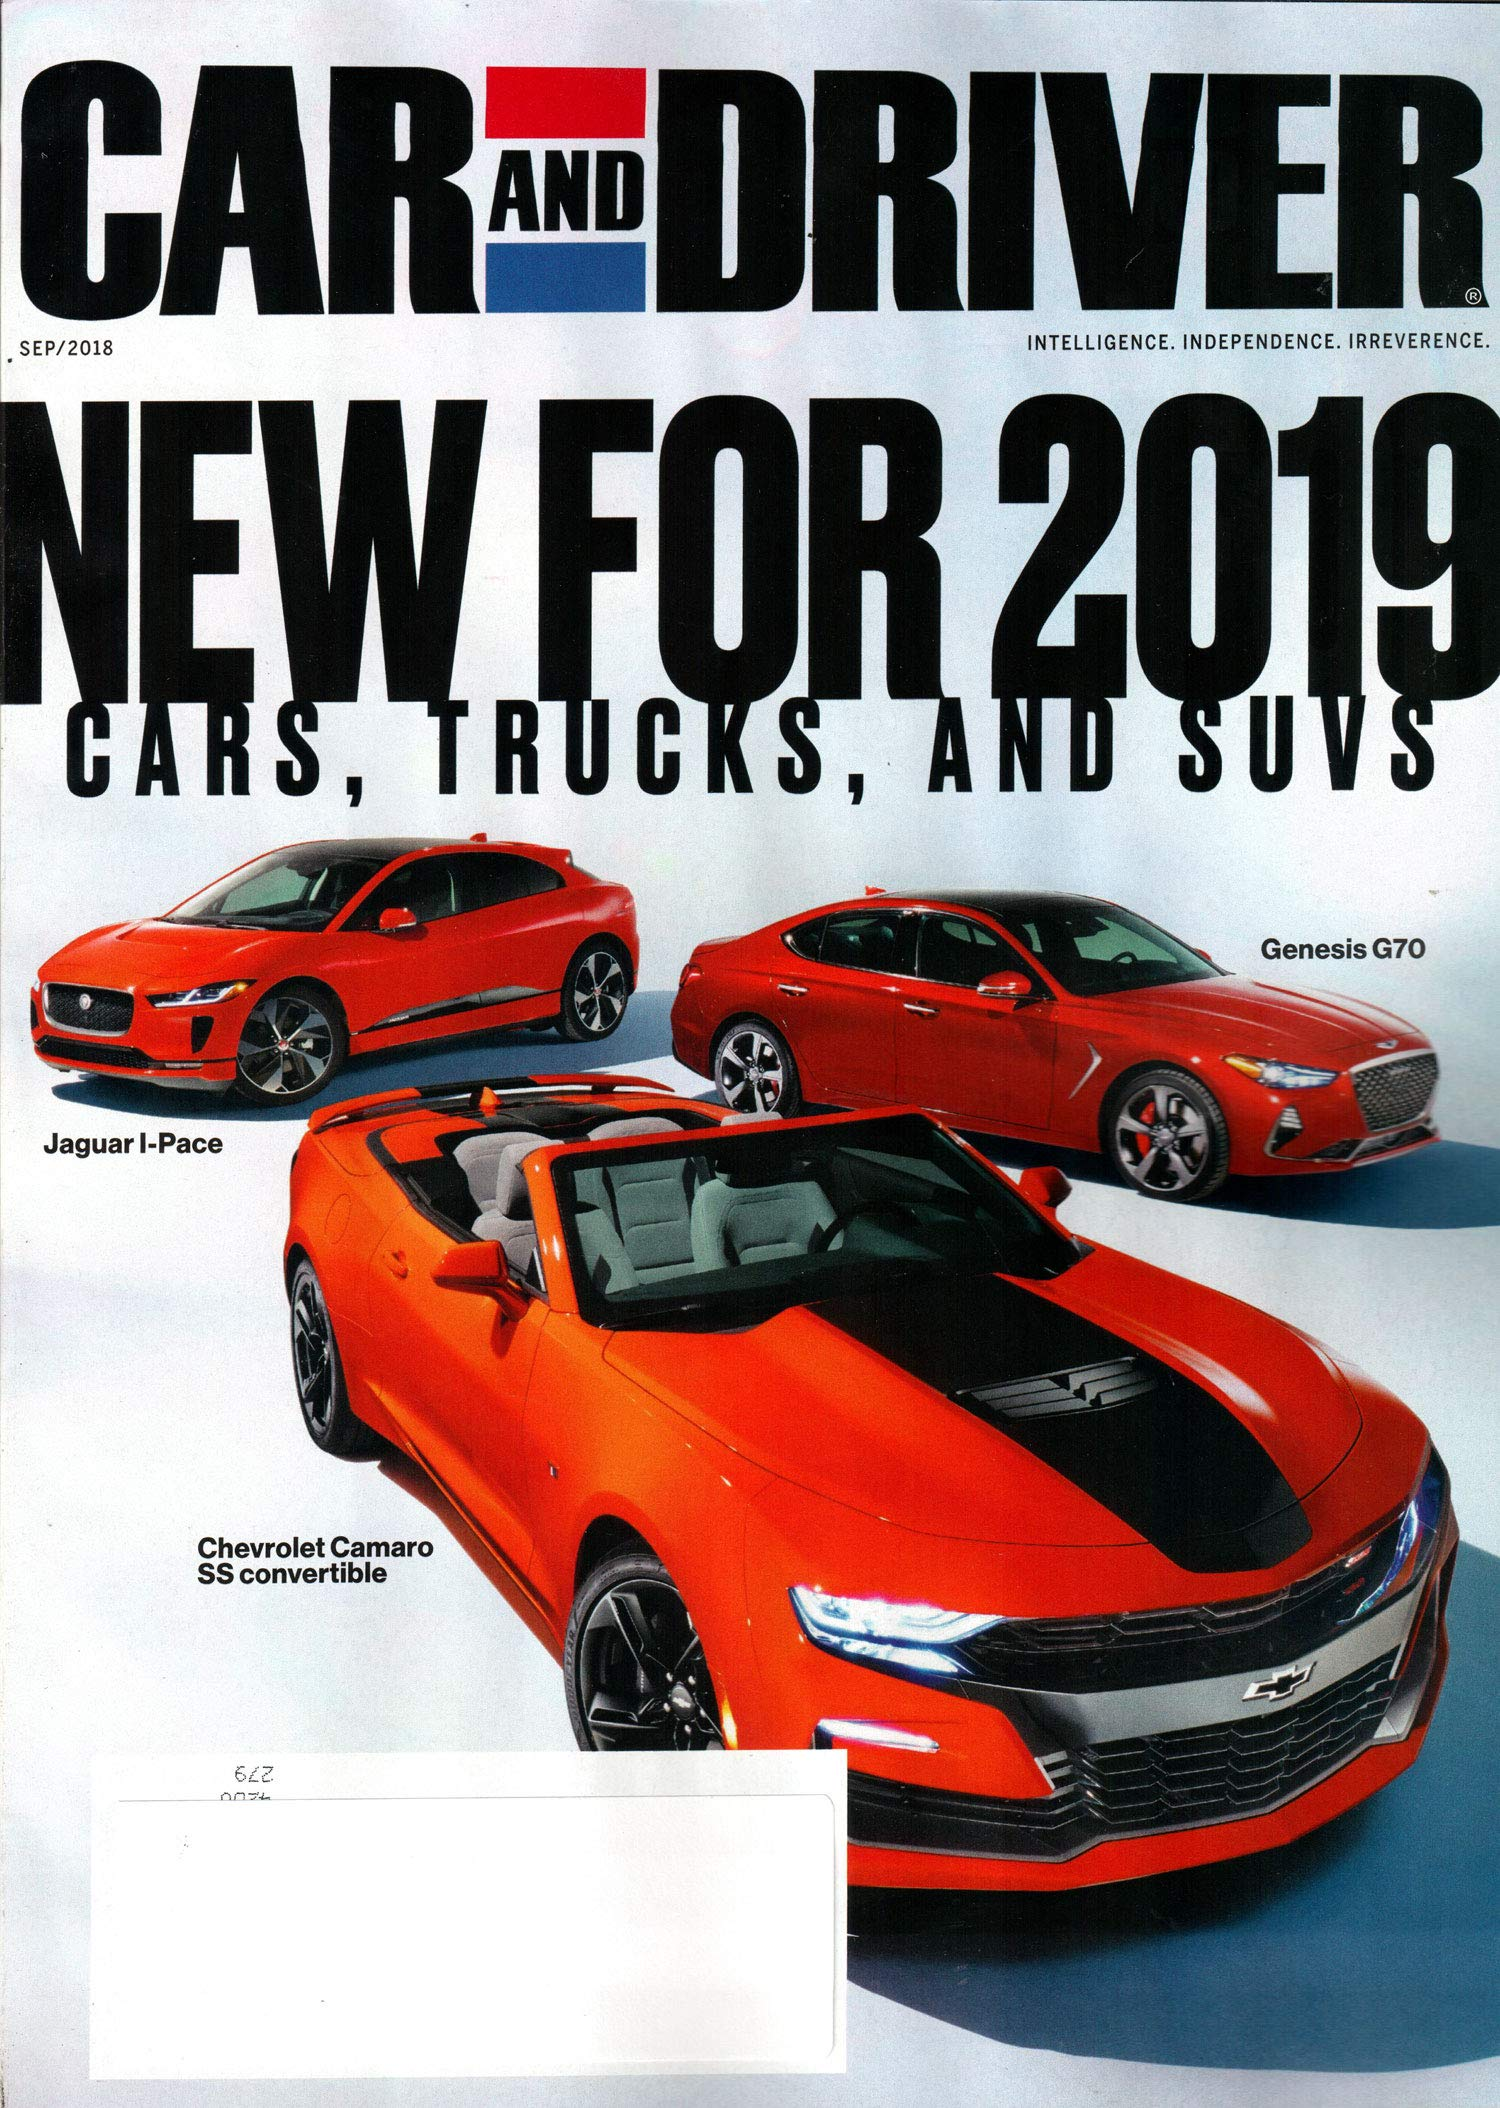 Car And Driver >> Car And Driver Magazine September 2018 New For 2019 Cars Trucks